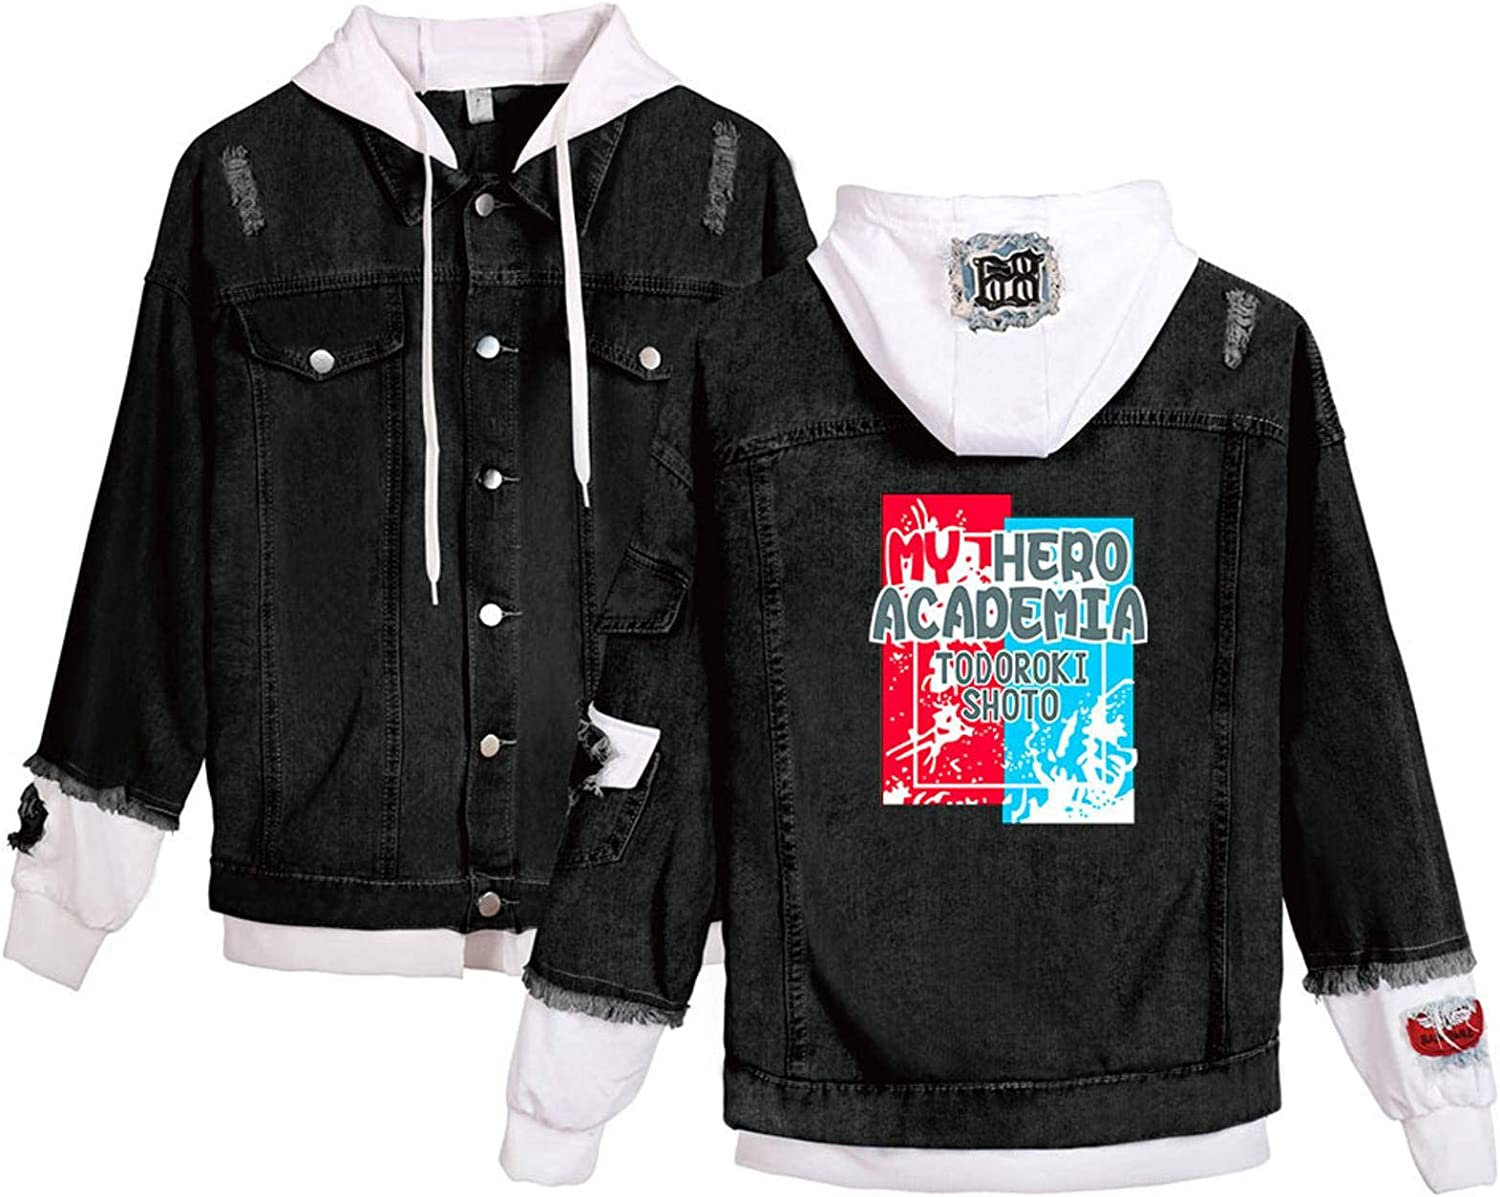 LZZSWDT Unisex Denim Jacket Anime My Max 65% OFF Academia Hooded Cospla SEAL limited product Hero